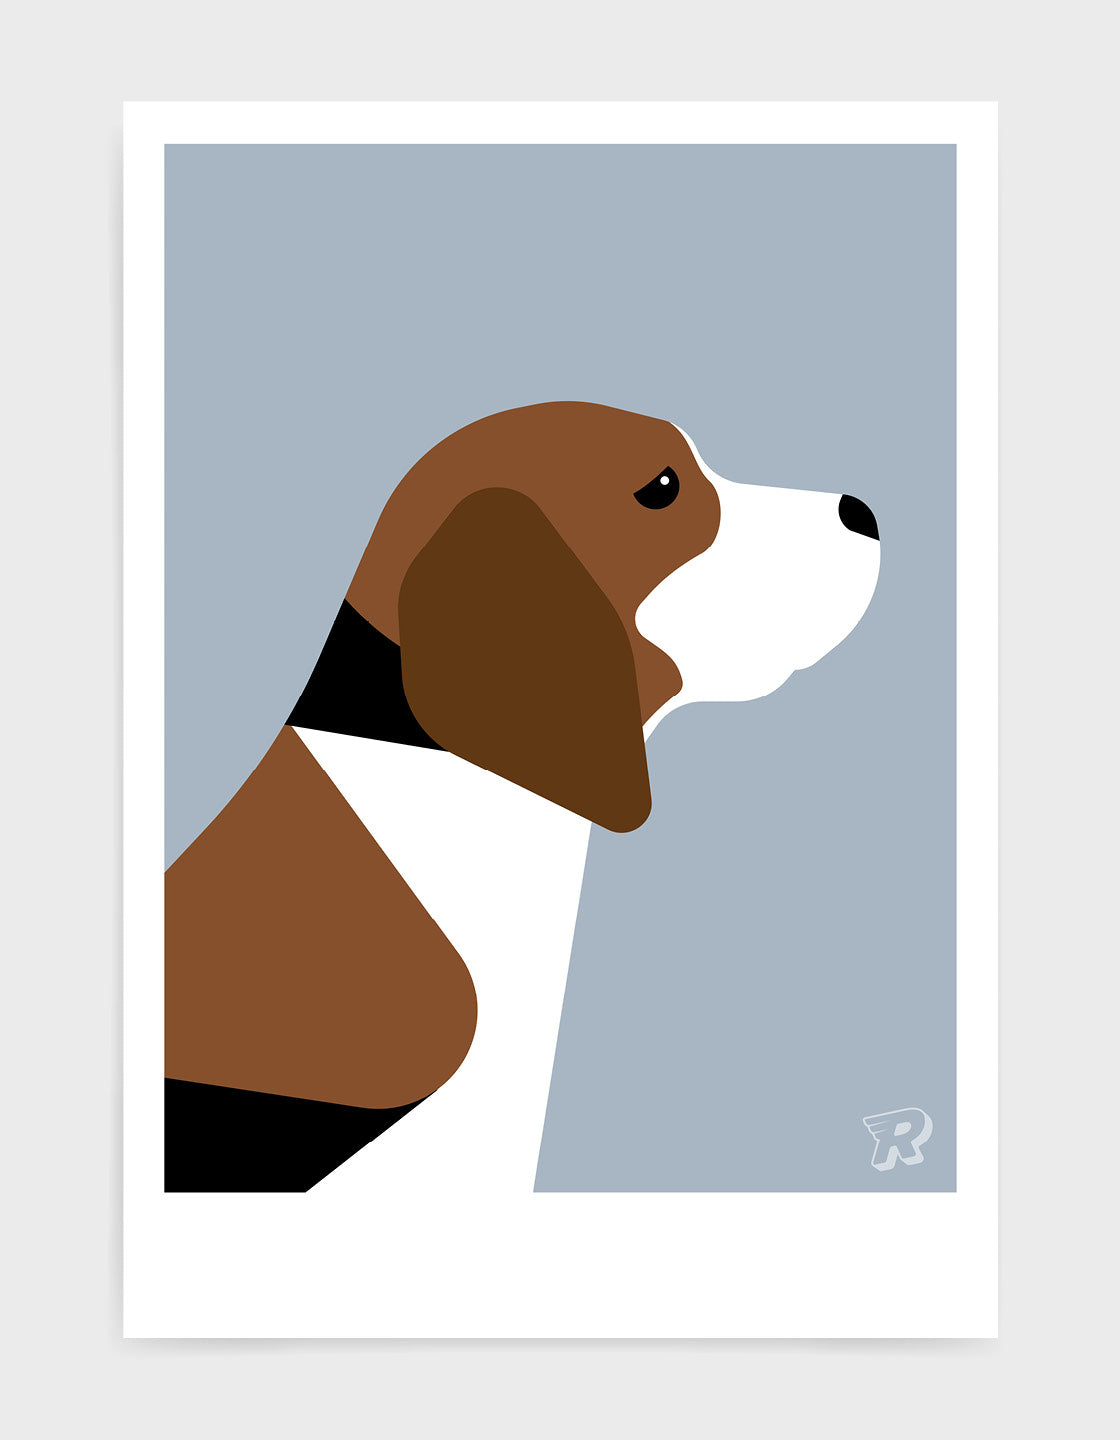 modern dog art print of a beagle in profile against as light grey background